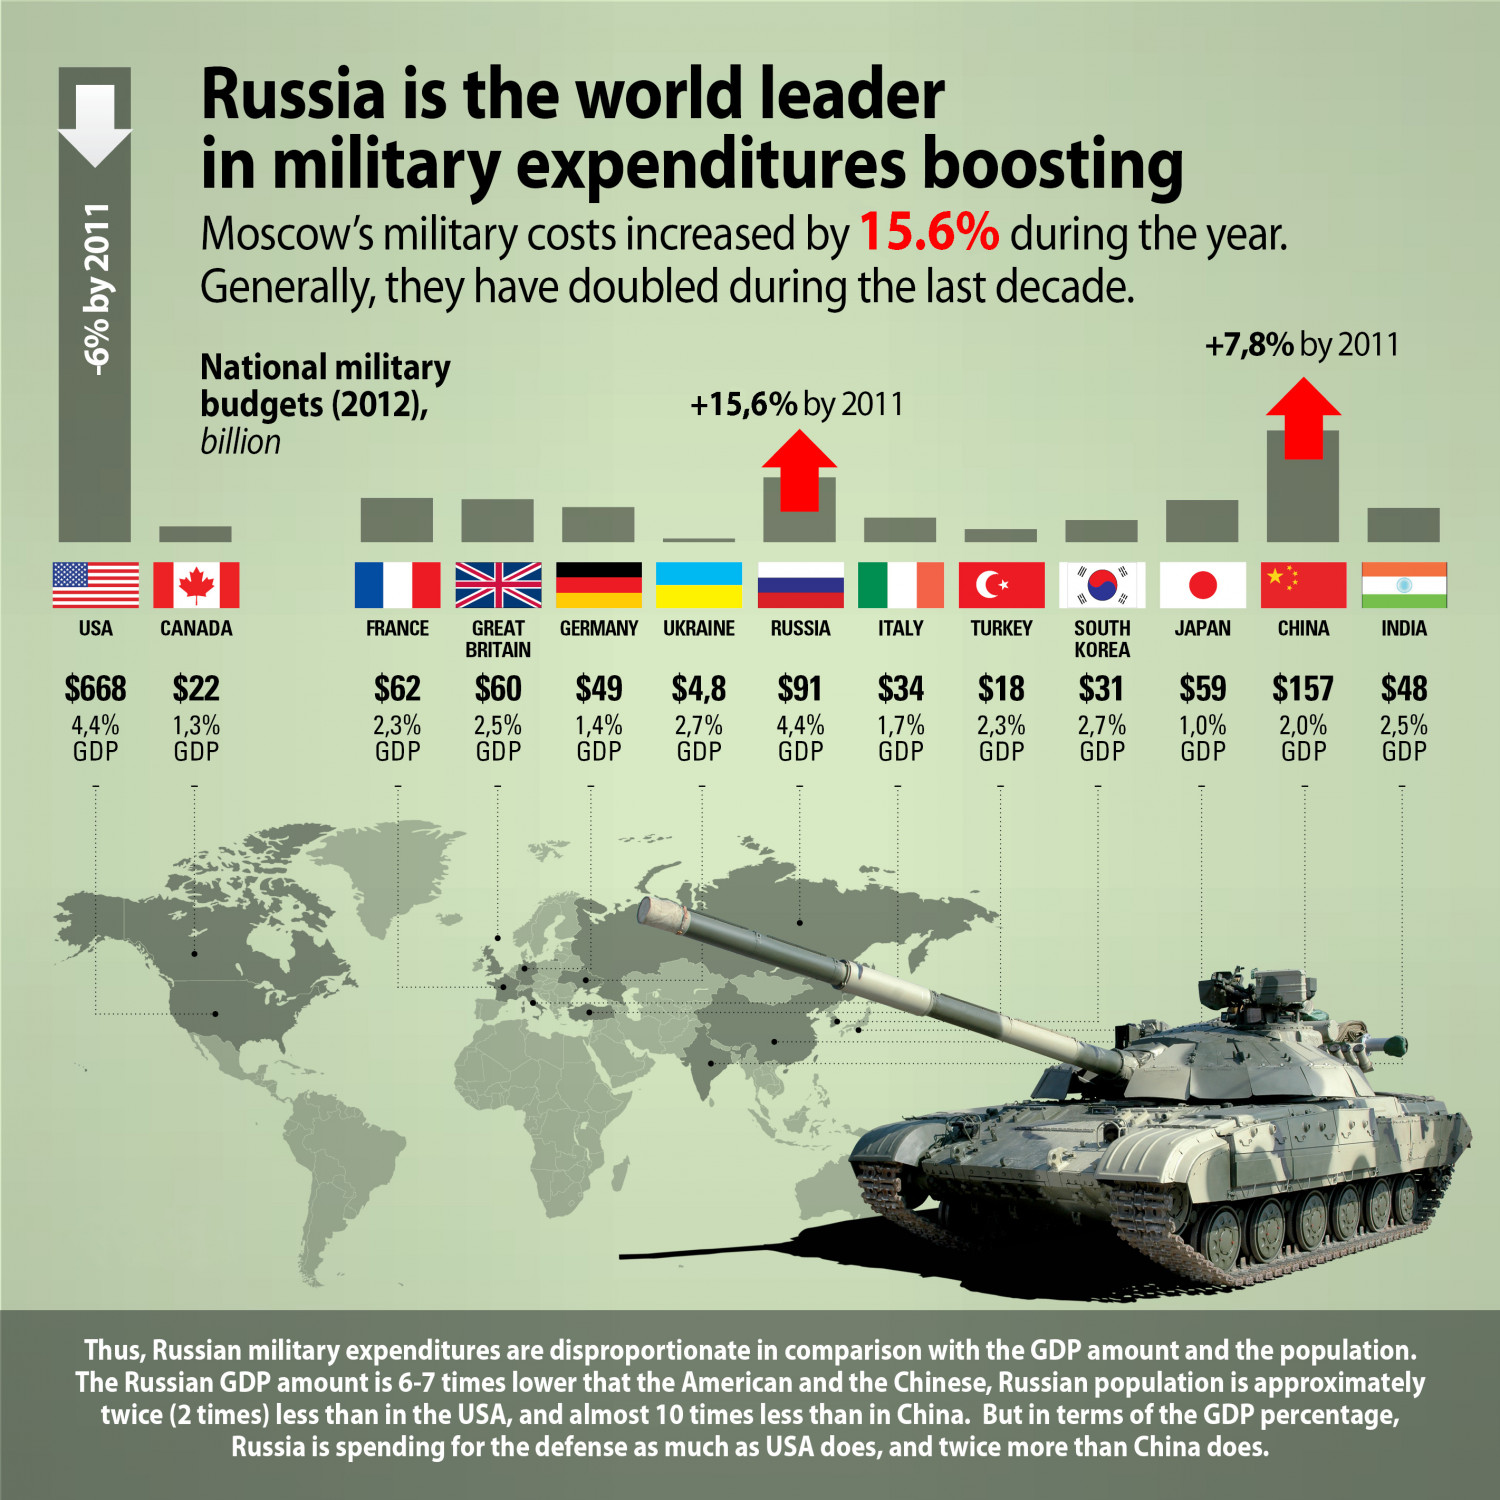 Russia is The World Leader in Military Expenditures Boosting Infographic